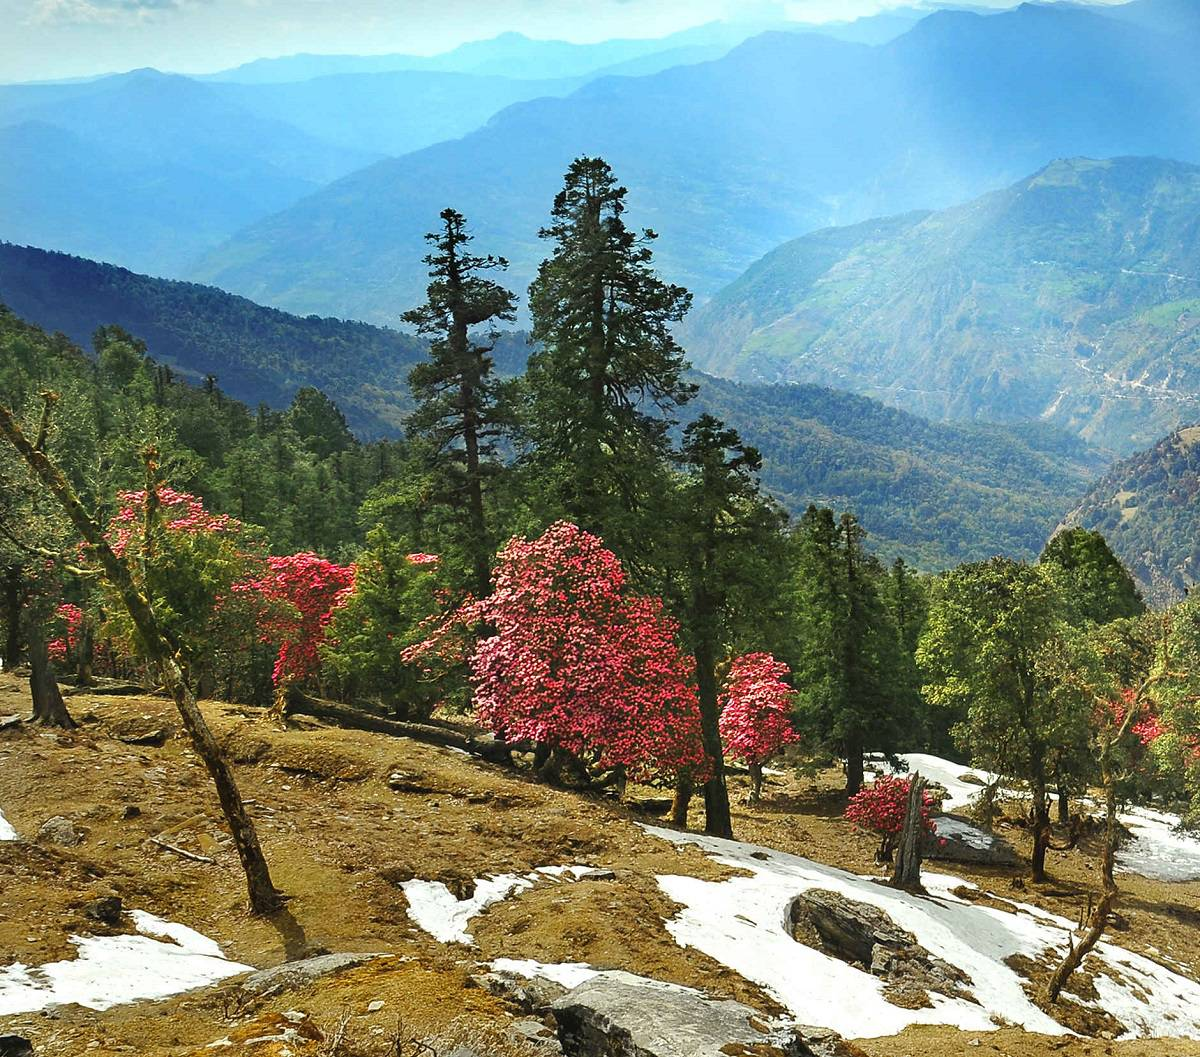 Almora Tourism - Places to visit in Almora, points of interest, travel guide